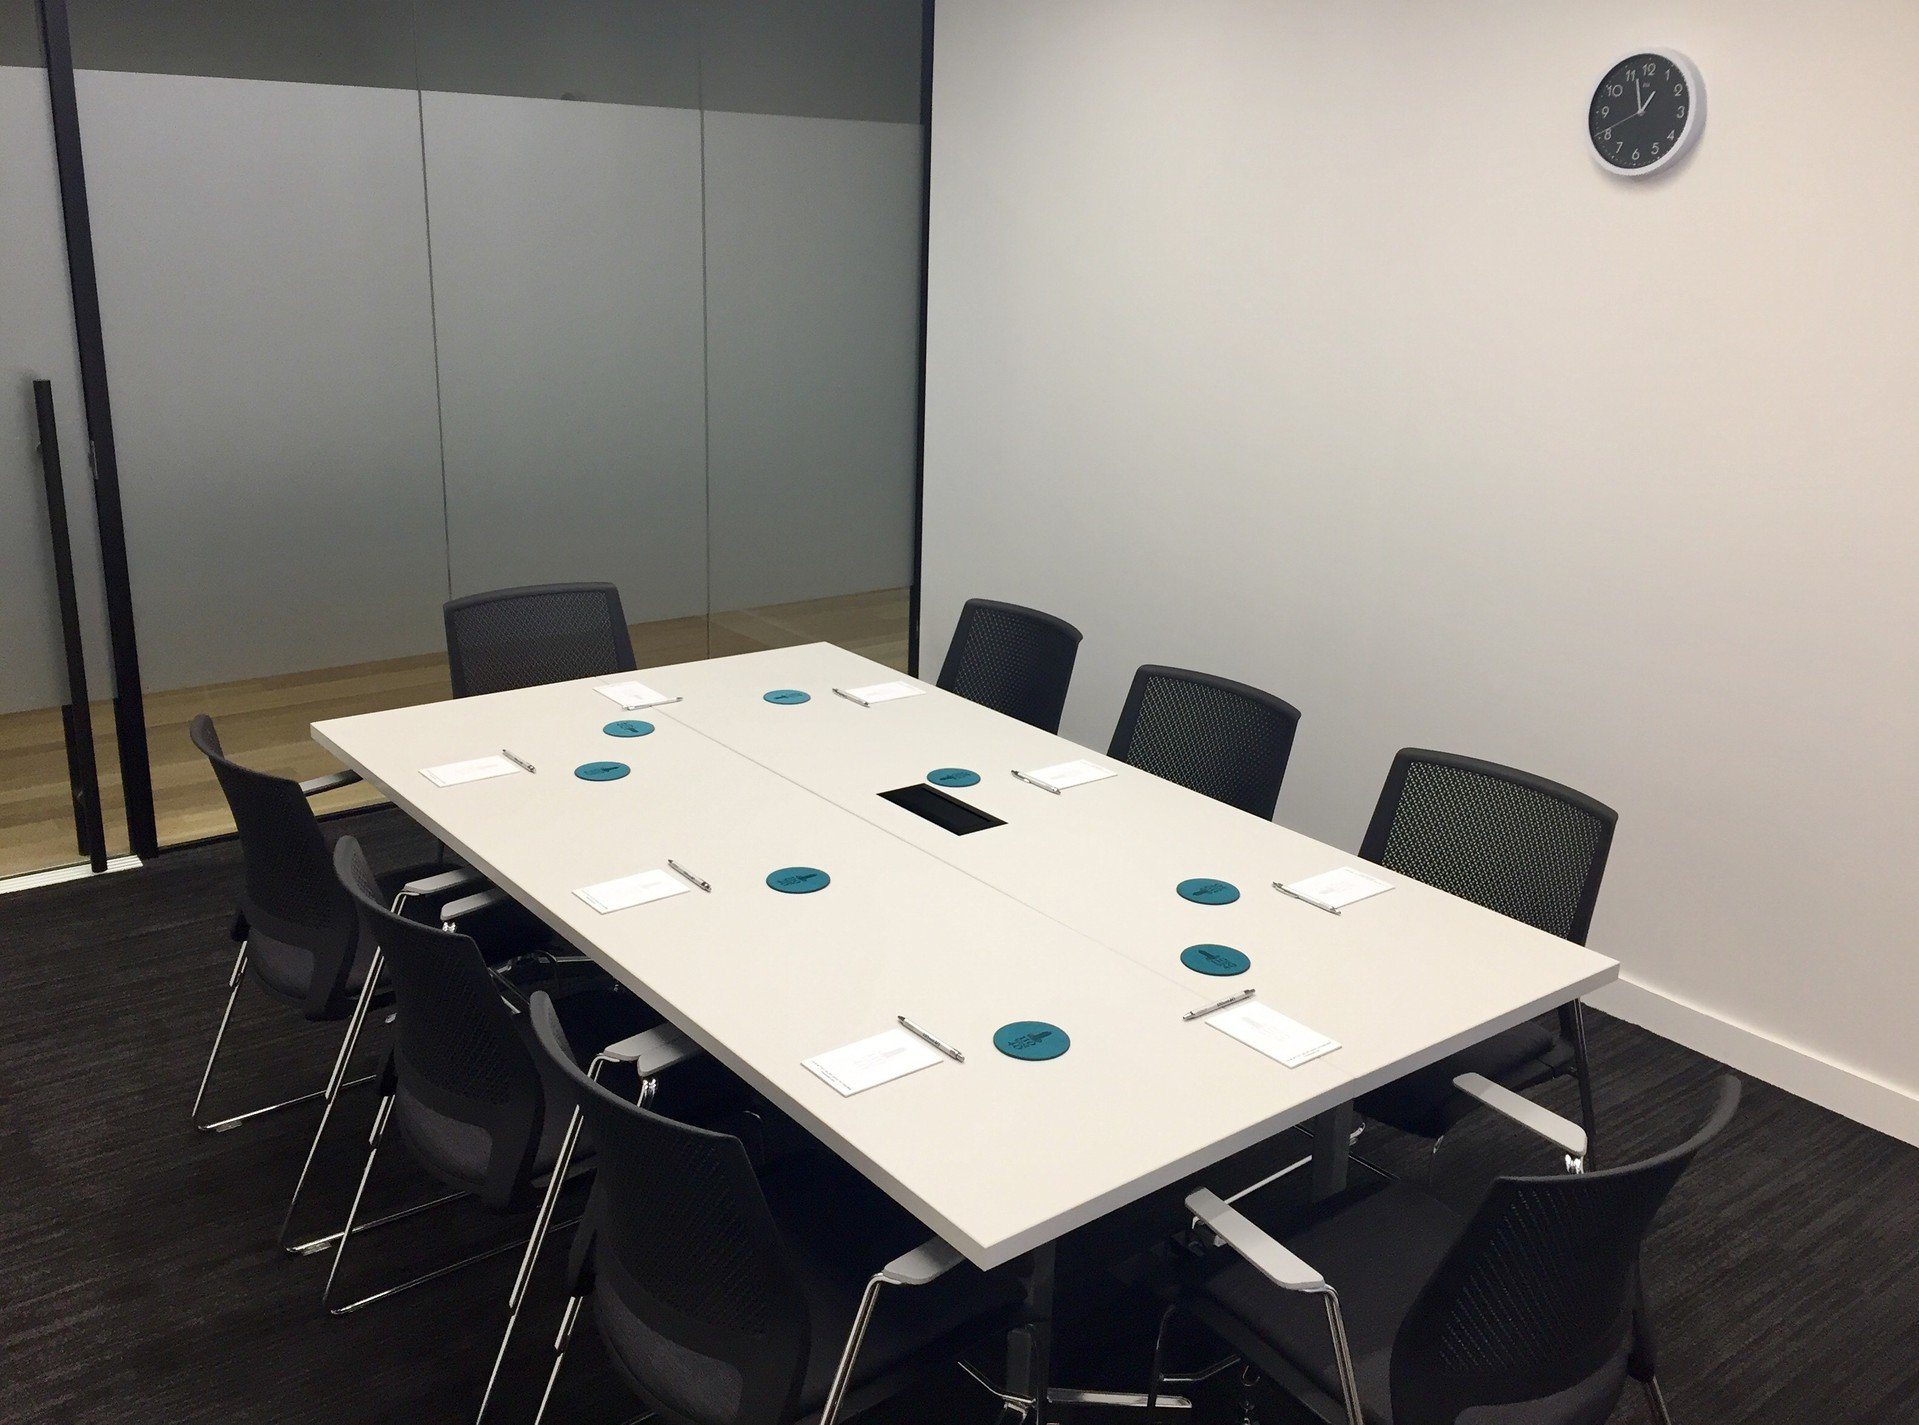 NYC  Meetingraum 110west40 Conference Room C image 1